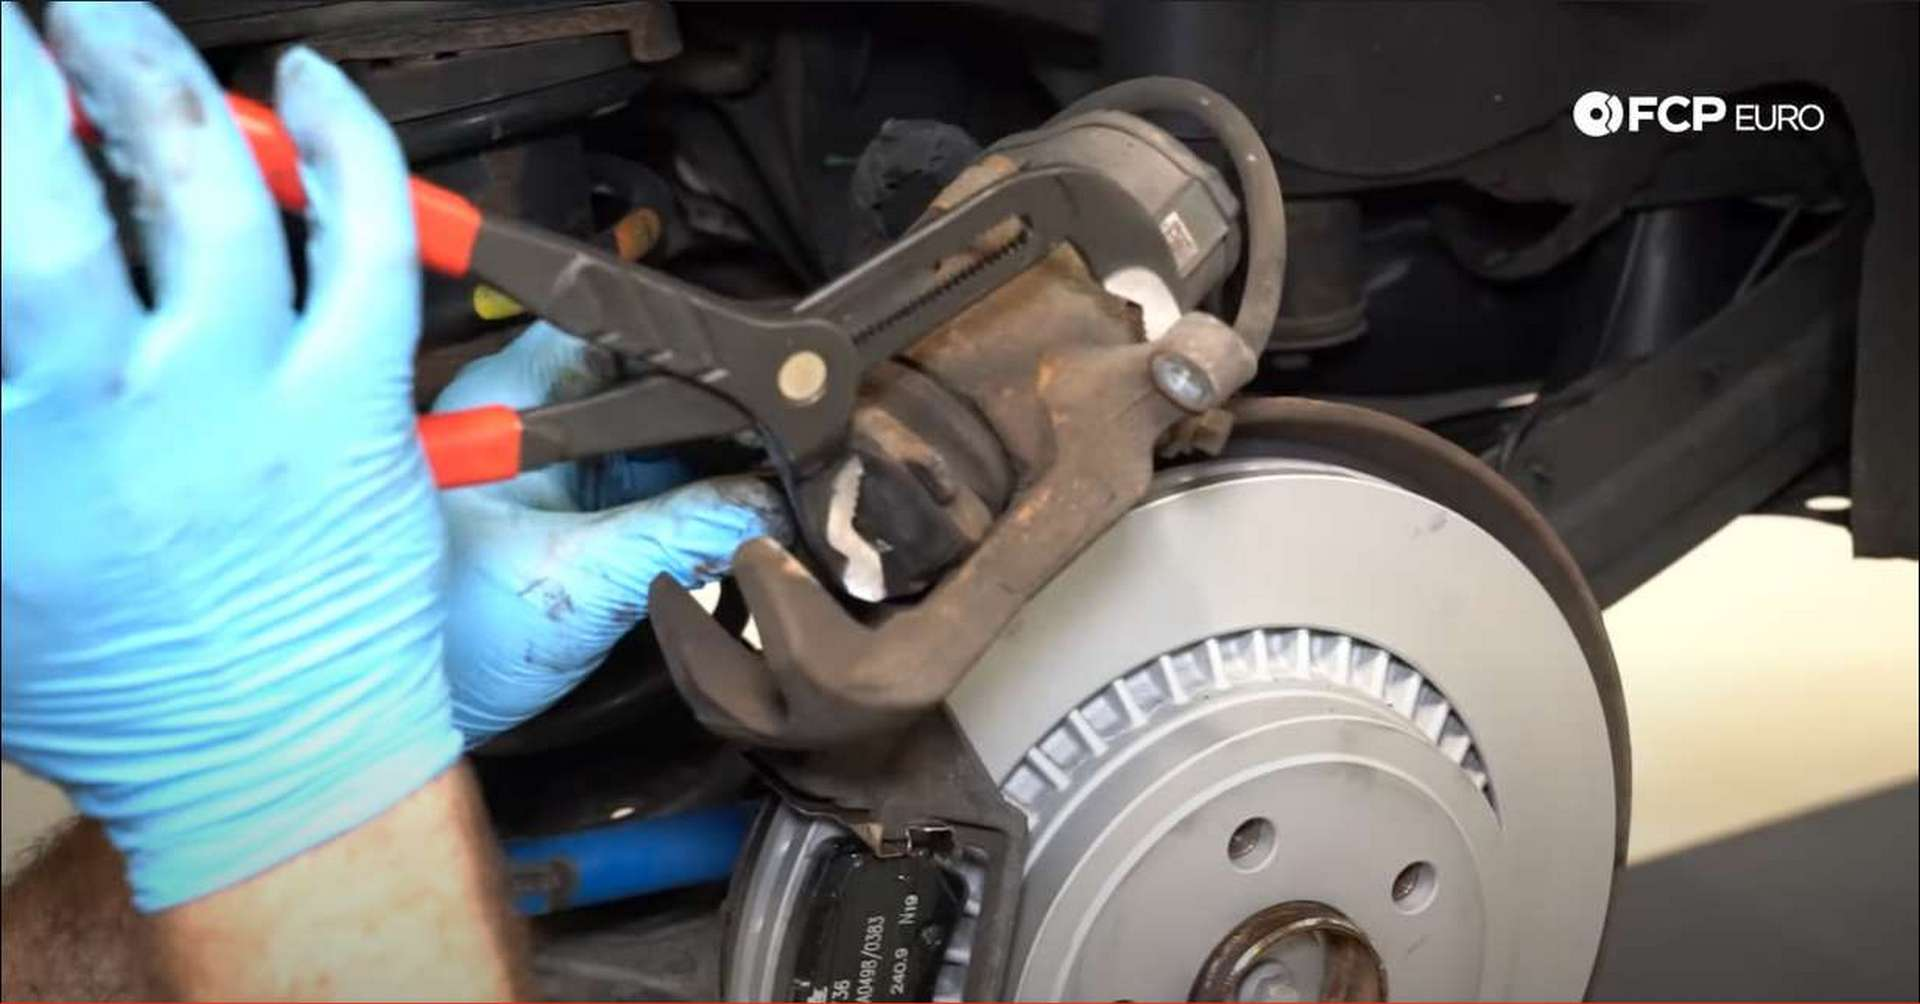 DIY P3 Volvo Rear Brakes retracting the caliper piston